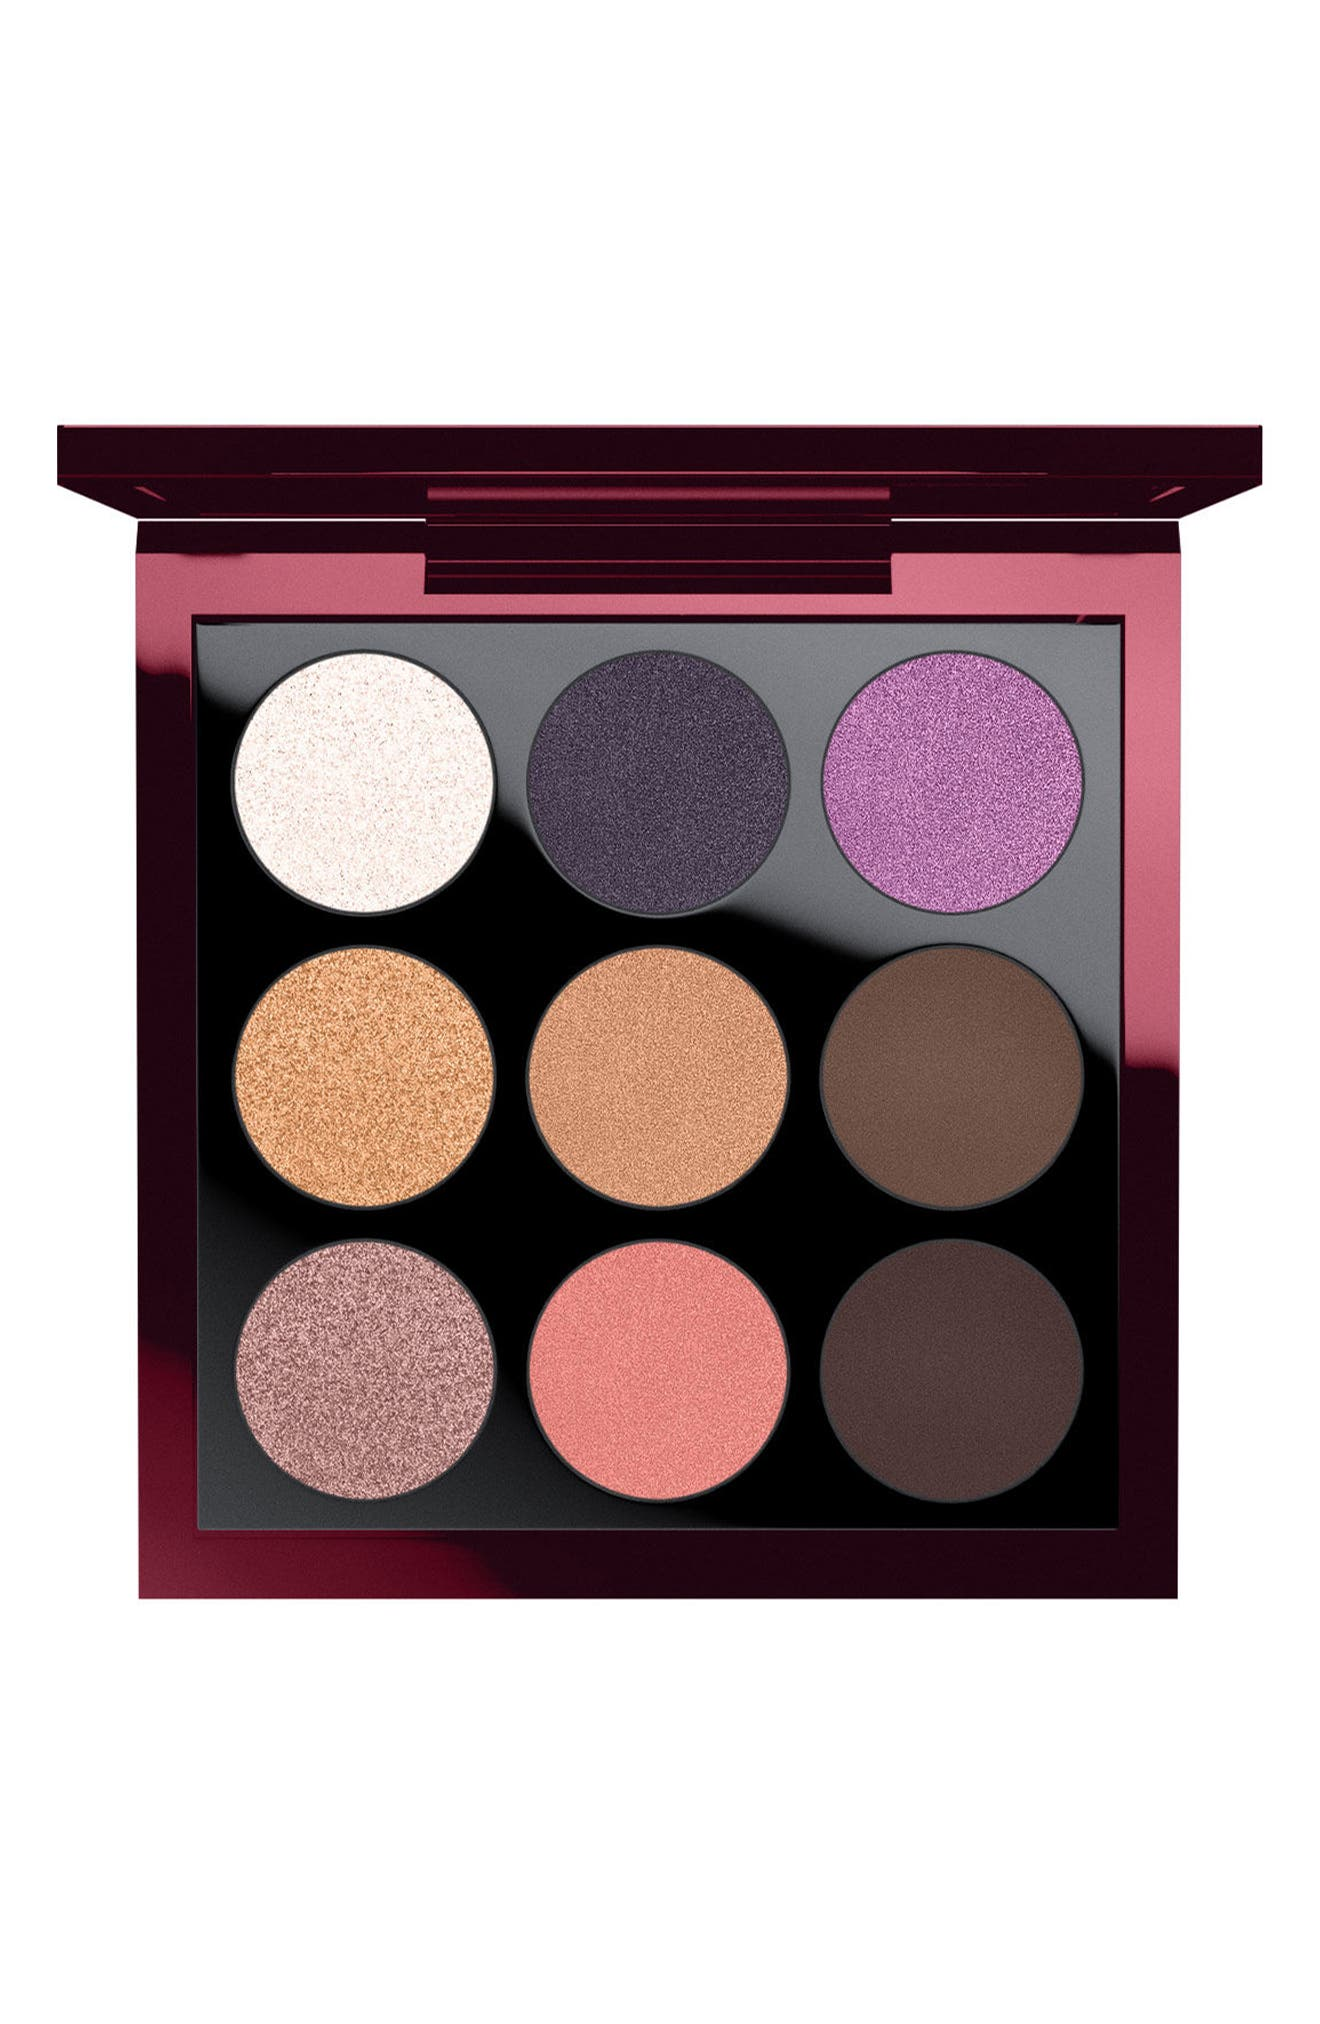 Mac Aaliyah Times Nine Eyeshadow Palette by Mac Cosmetics